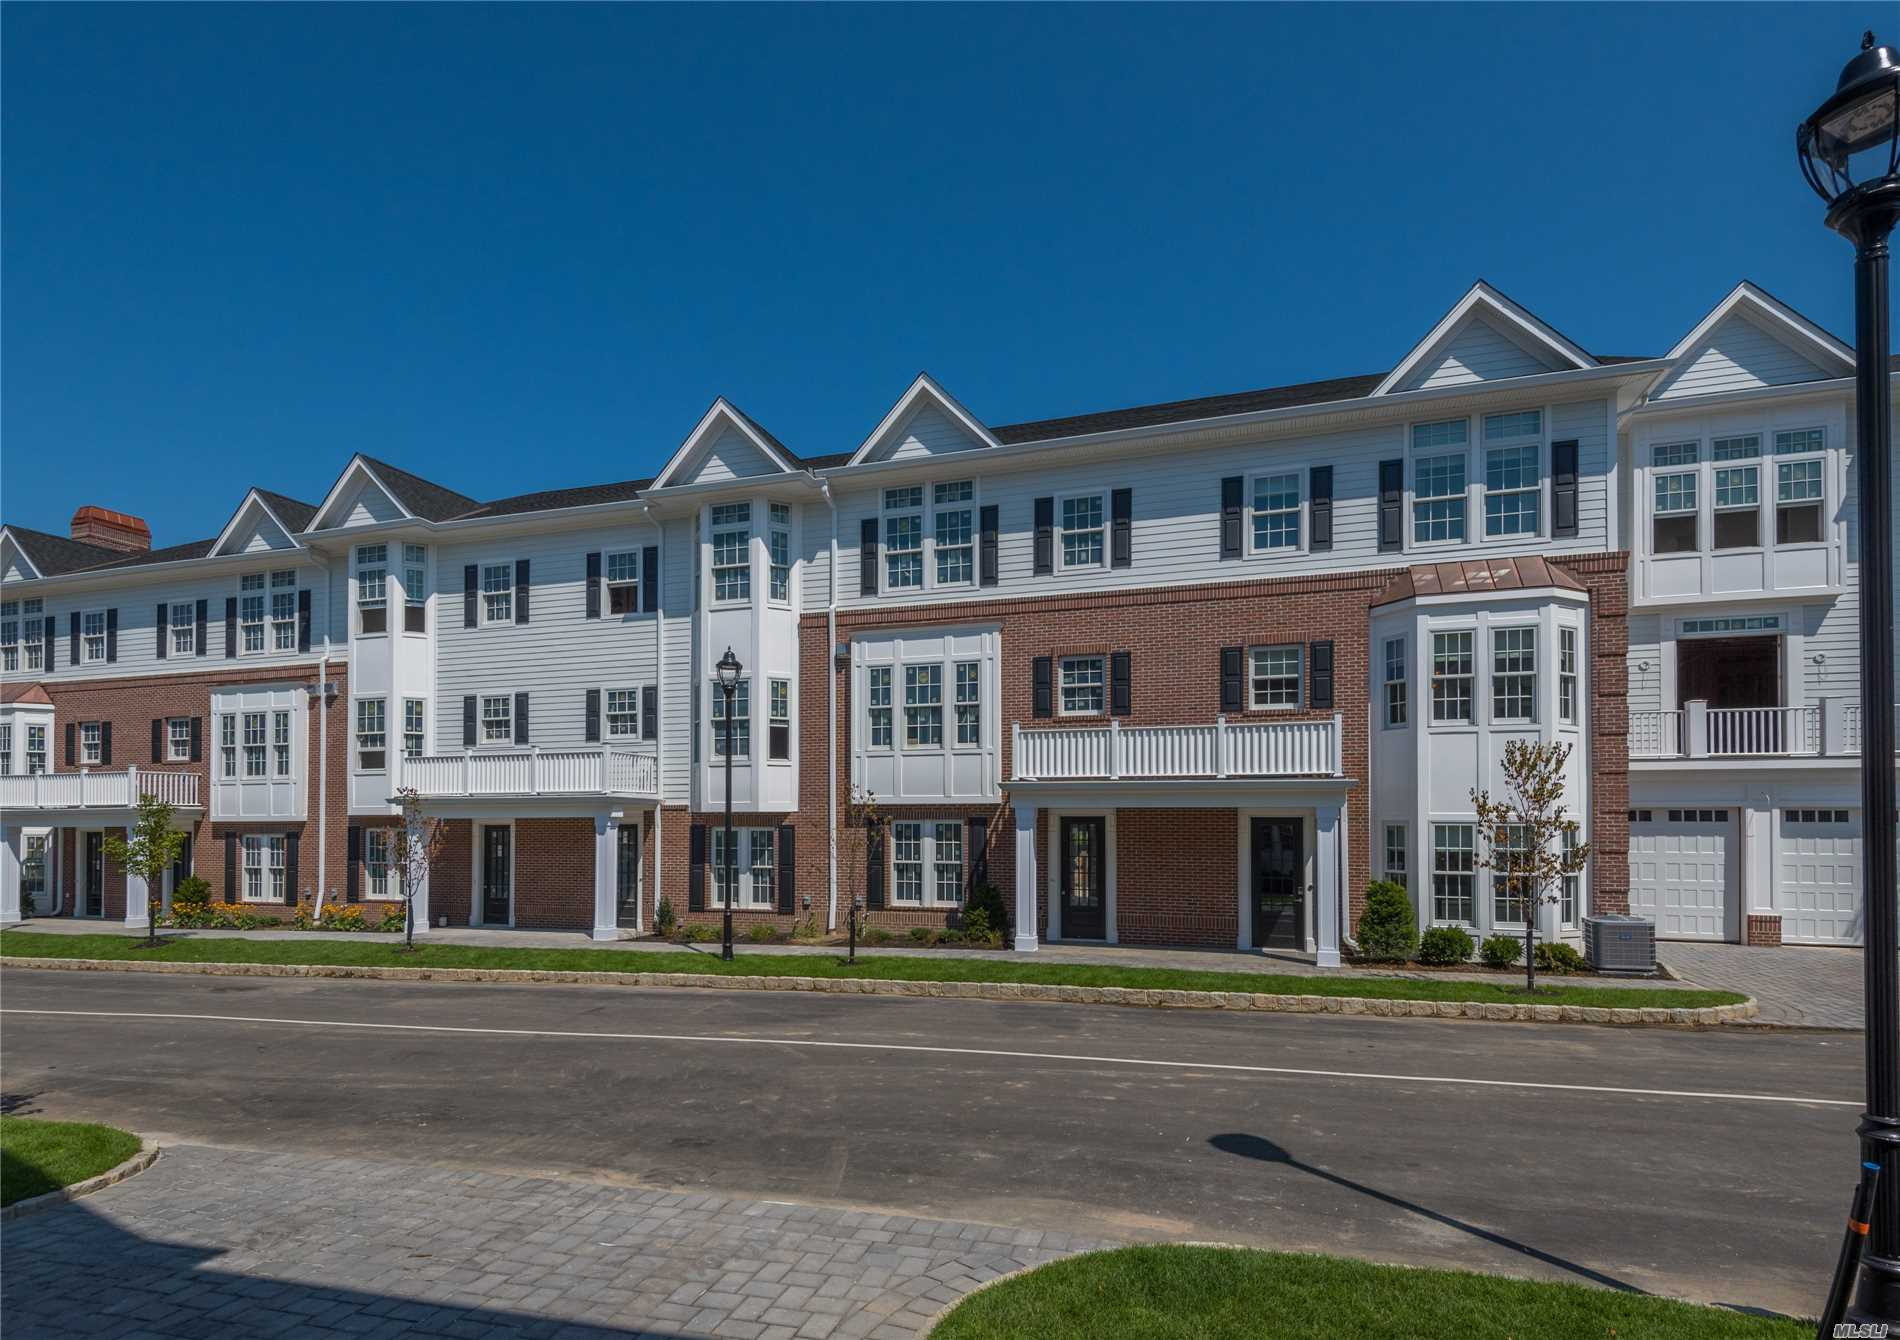 Luxury New Townhouses In The Heart Of Roslyn Village. Elegant 2750+Sqft 3 Bed, 3 Bath Condo Featuring Top Of The Line Kitchen And Baths, Gas Fireplace, Private Elevator, 2 Car Garage. Set On 12 Acres W Waterside Promenade, Kayaks, Bbq Area, Playground And Private Clubhouse. True Urban-Suburban Living. One Block To Town, Shopping, Theater, Library And Restaurants.